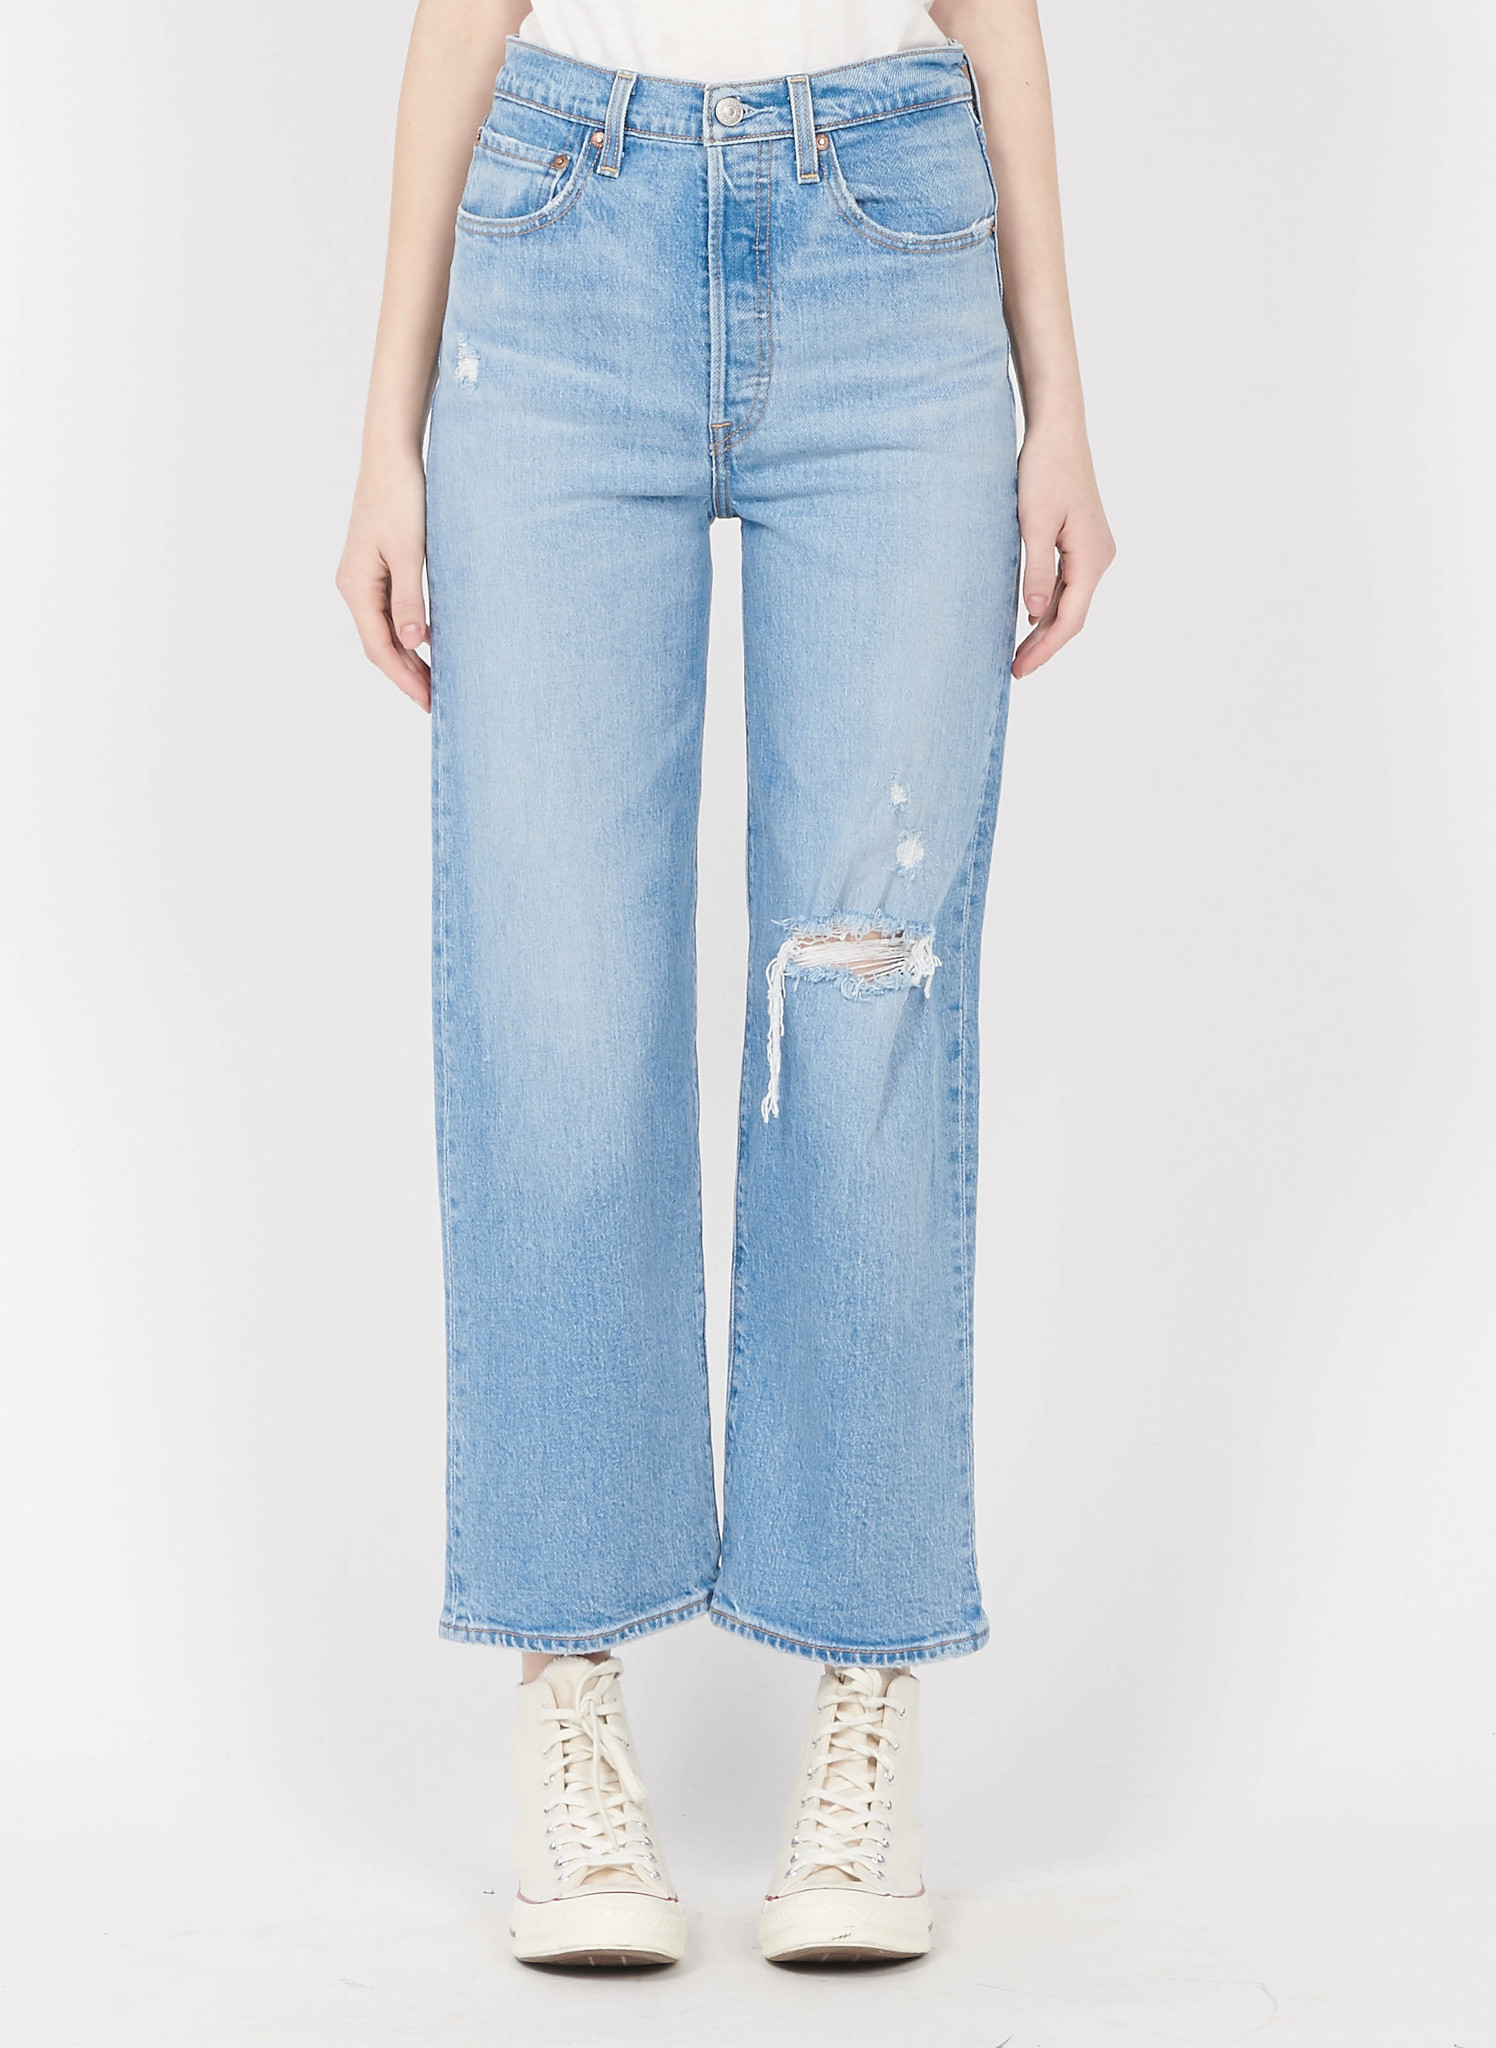 LEVIS ribcage straight ankle-1